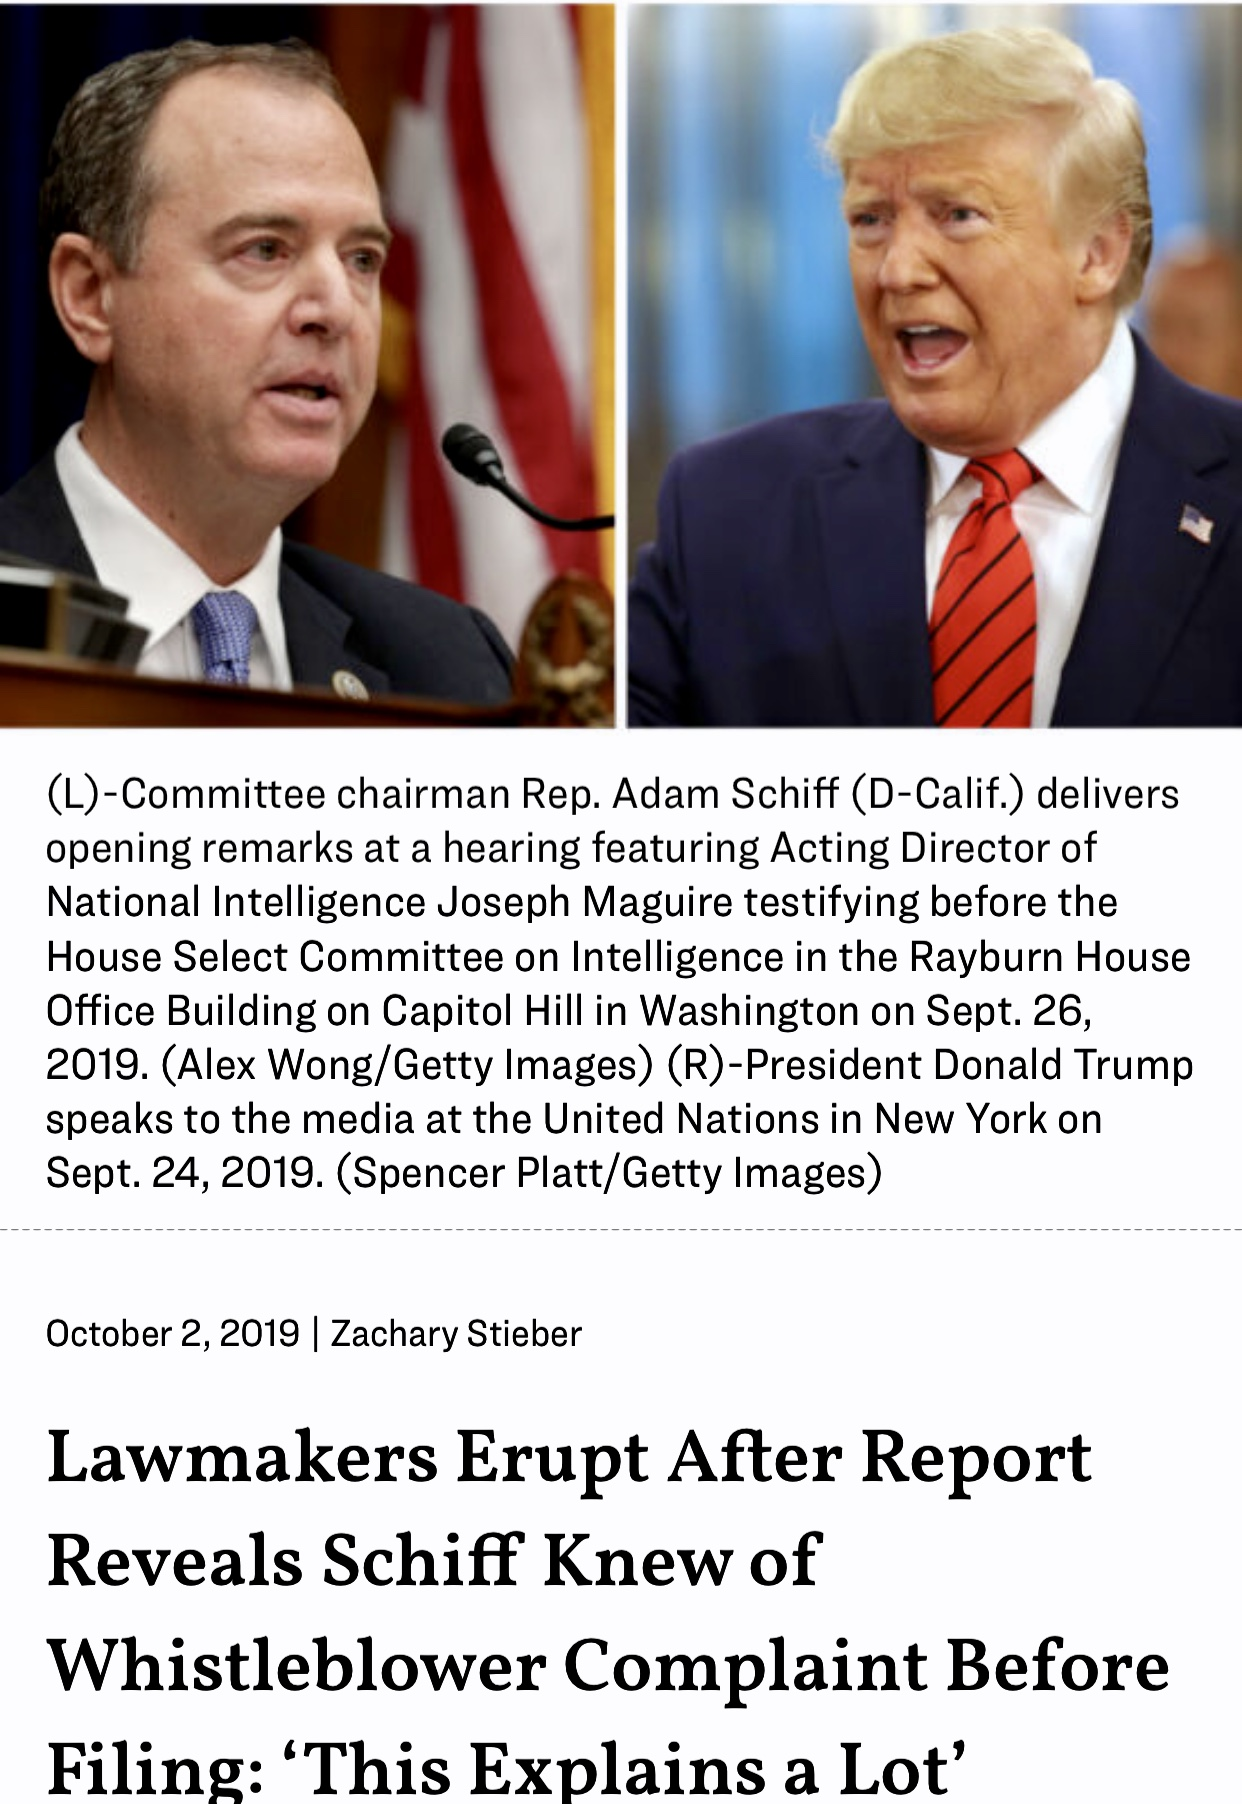 Lawmakers Erupt After Report Reveals Schiff Knew of Whistleblower Complaint Before Filing: 'This Explains a Lot'